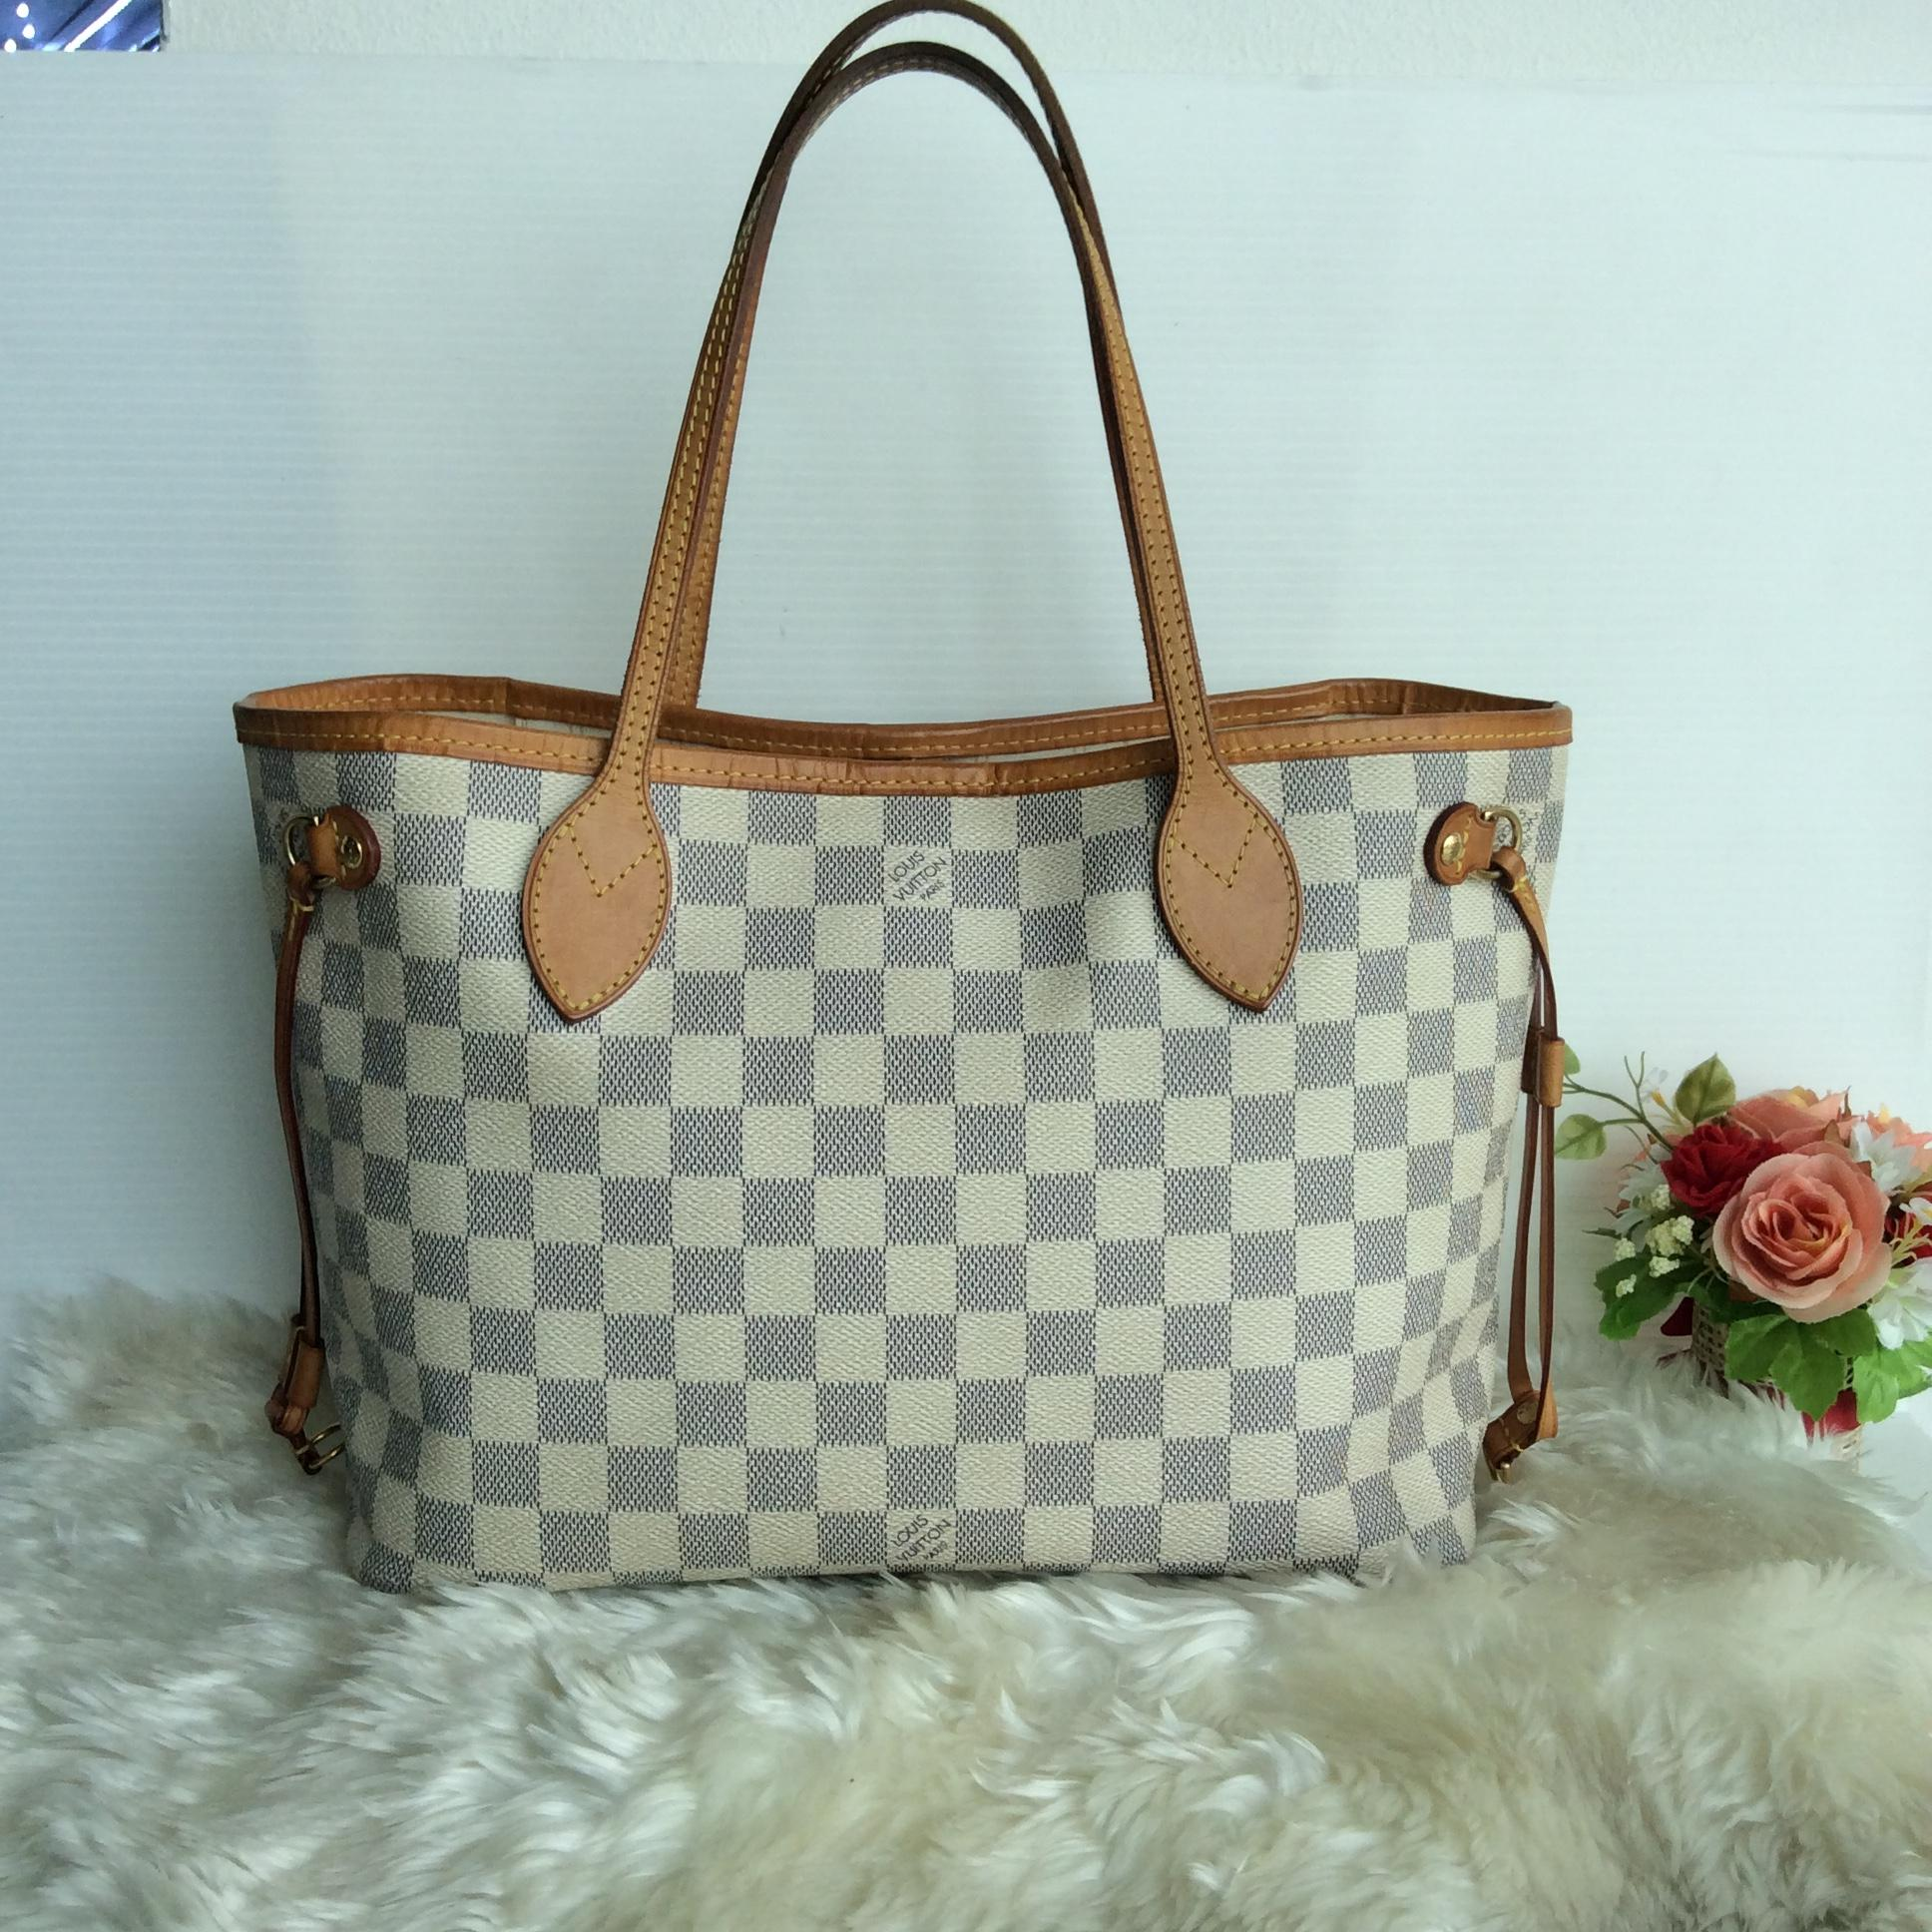 (SOLD OUT)LV Neverful Pm Azur